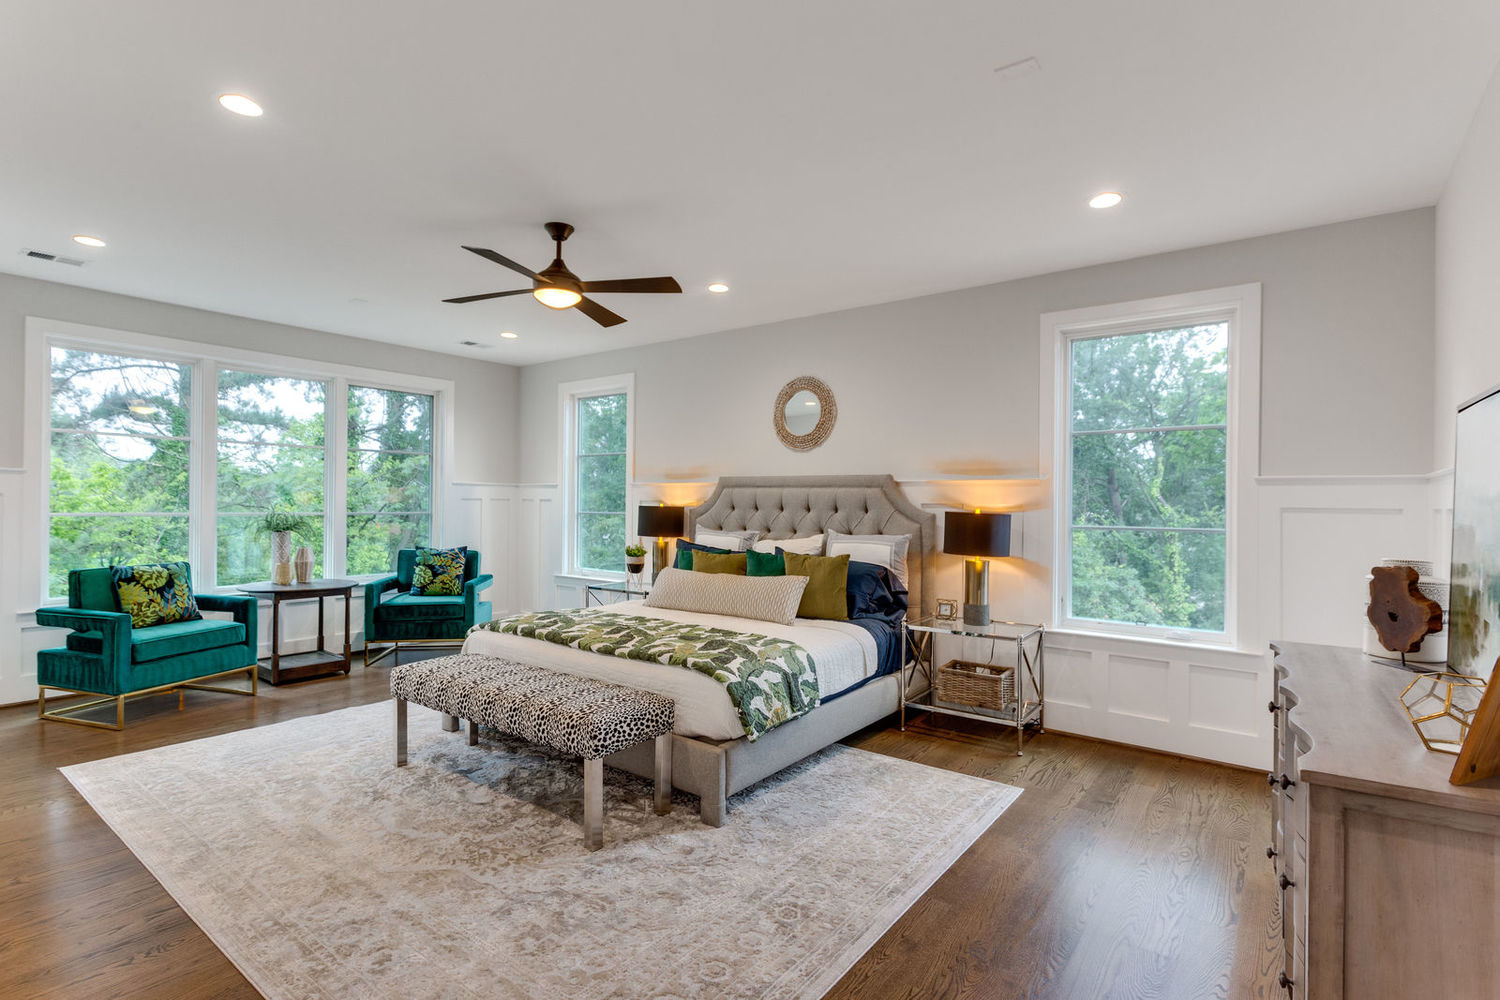 Roosevelt Place-Fairfax Model-6404 N 19th Street-Arlington-Virginia-Classic Cottages-23.jpg